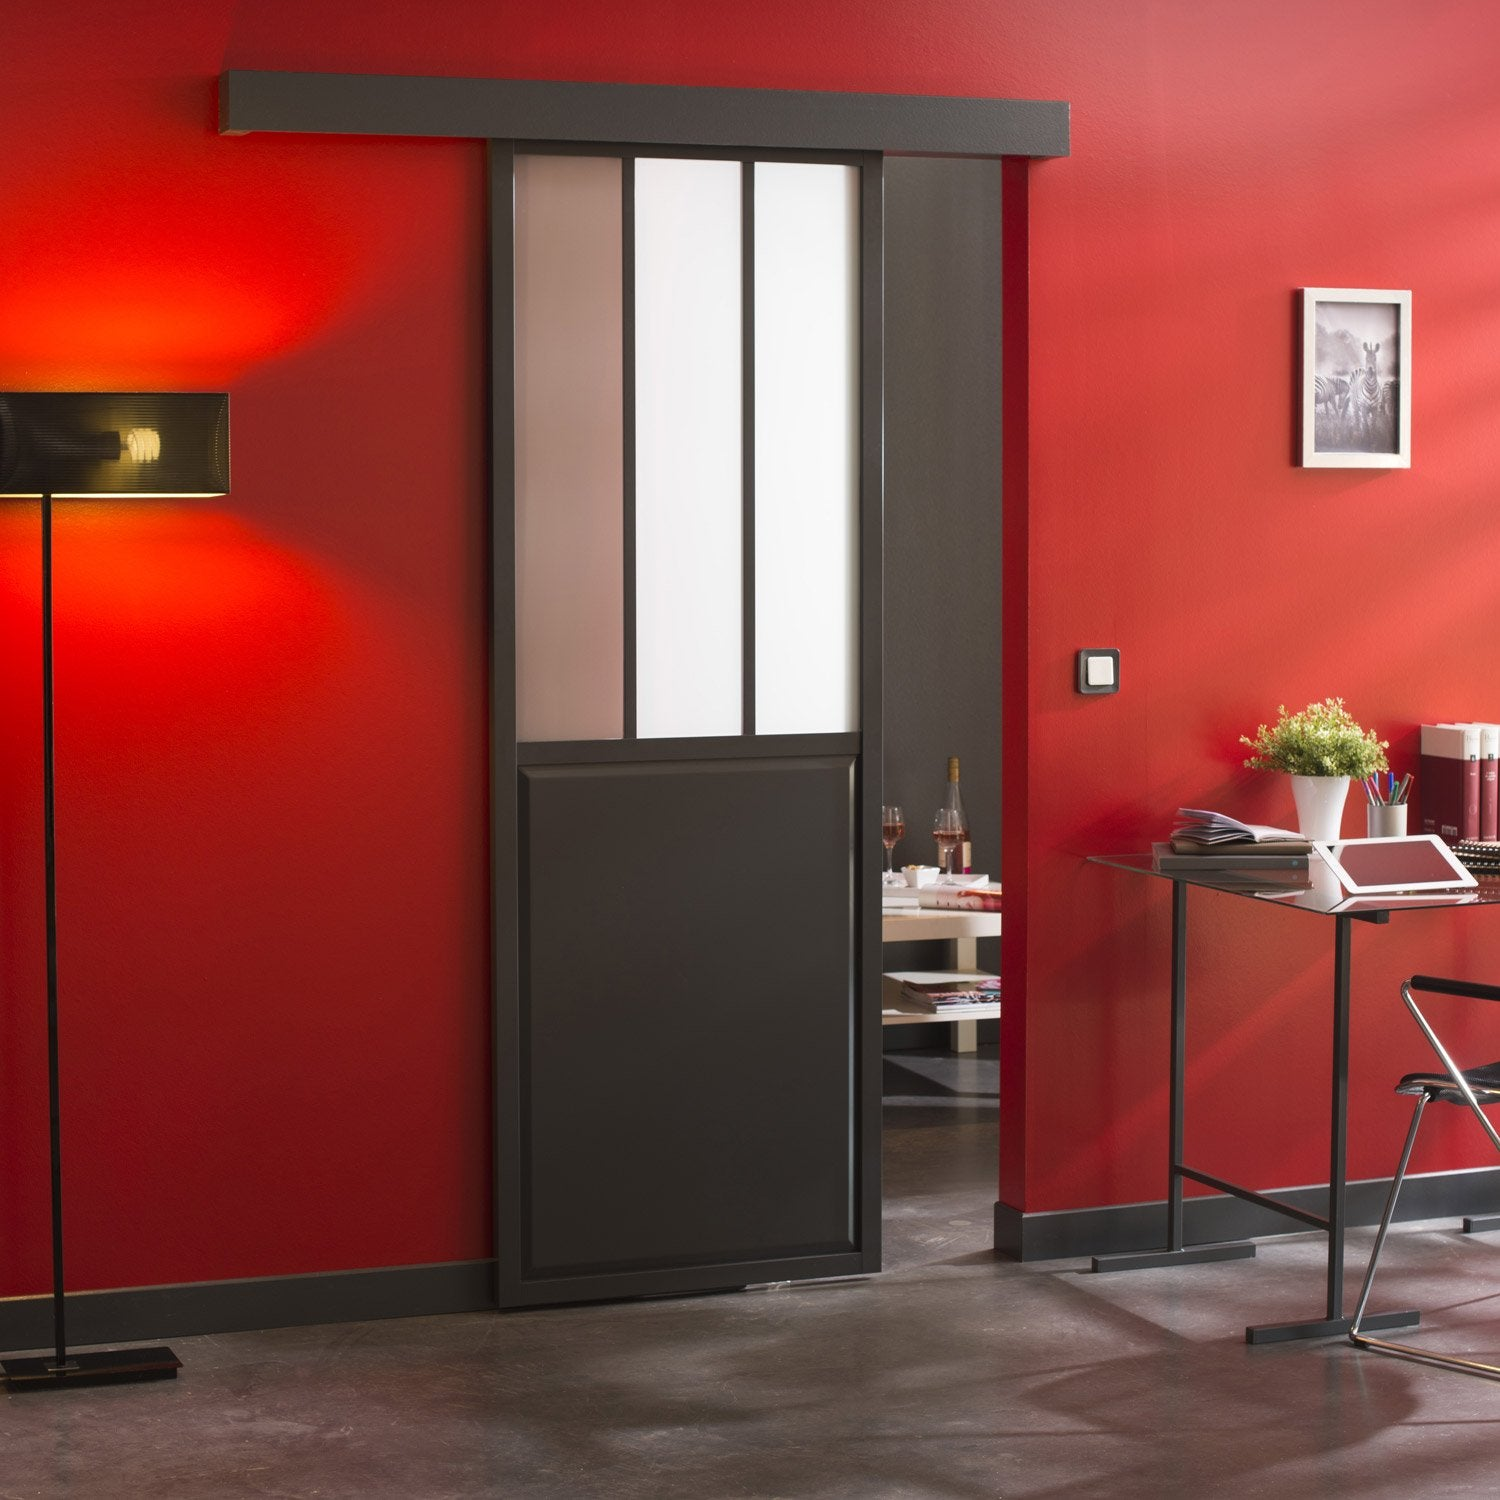 Ensemble porte coulissante atelier verre clair mdf rev tu for Porte interieur atelier